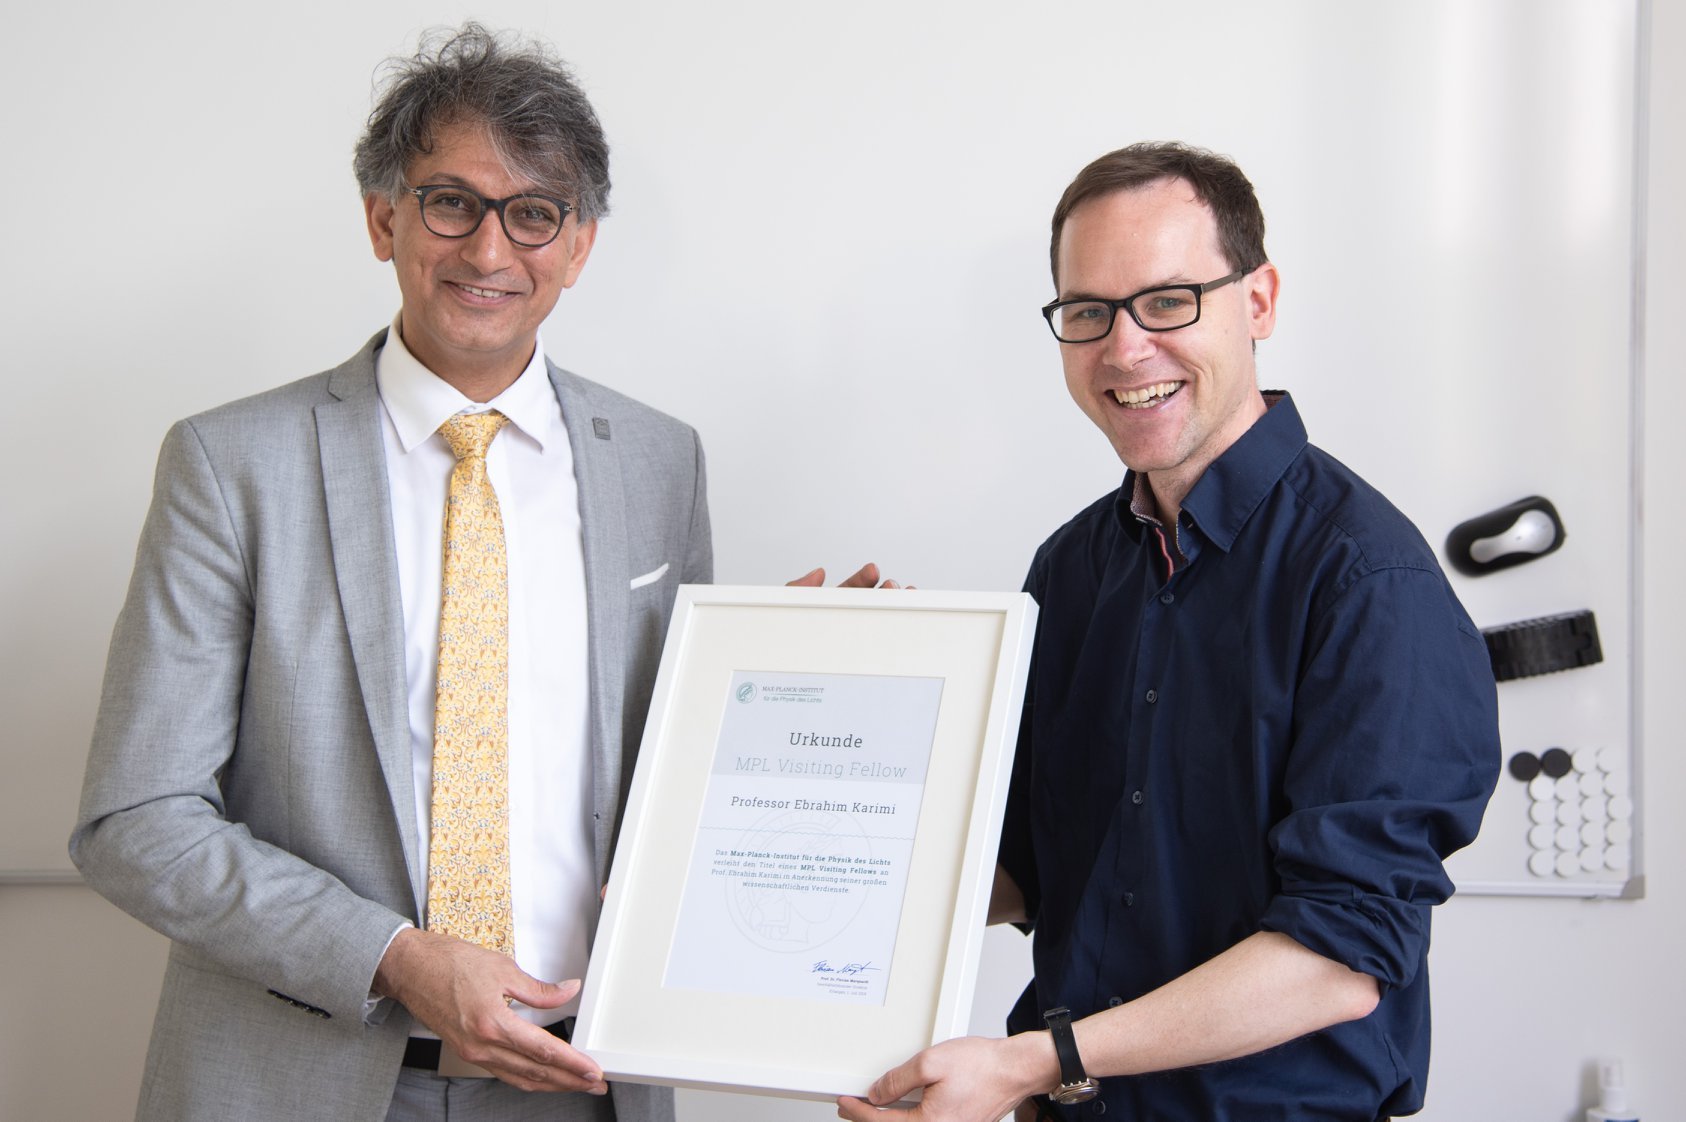 Prof. Ebrahim Karimi (left) and Prof. Florian Marquardt (right) holding a copy of Prof. Karimi's award